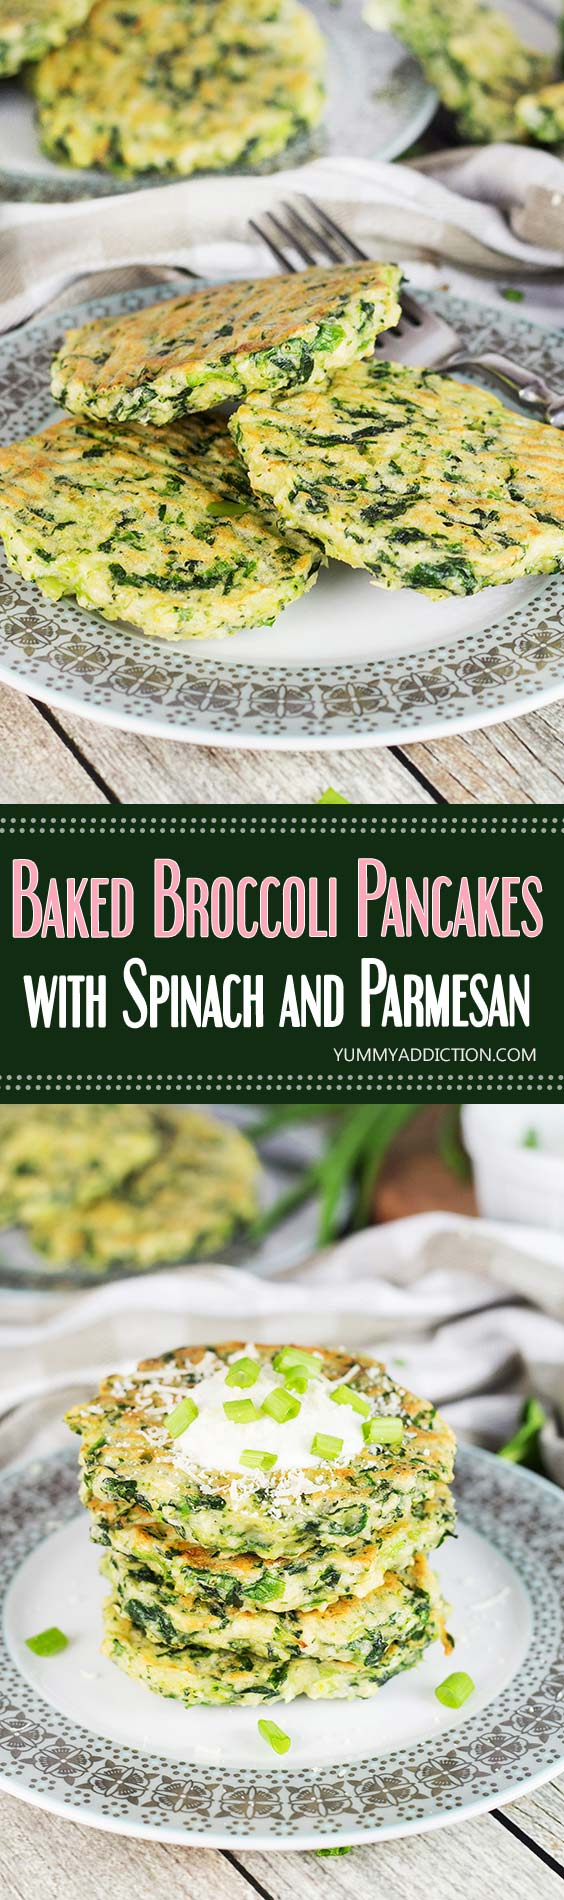 Broccoli Pancakes W Spinach And Parmesan Cheese